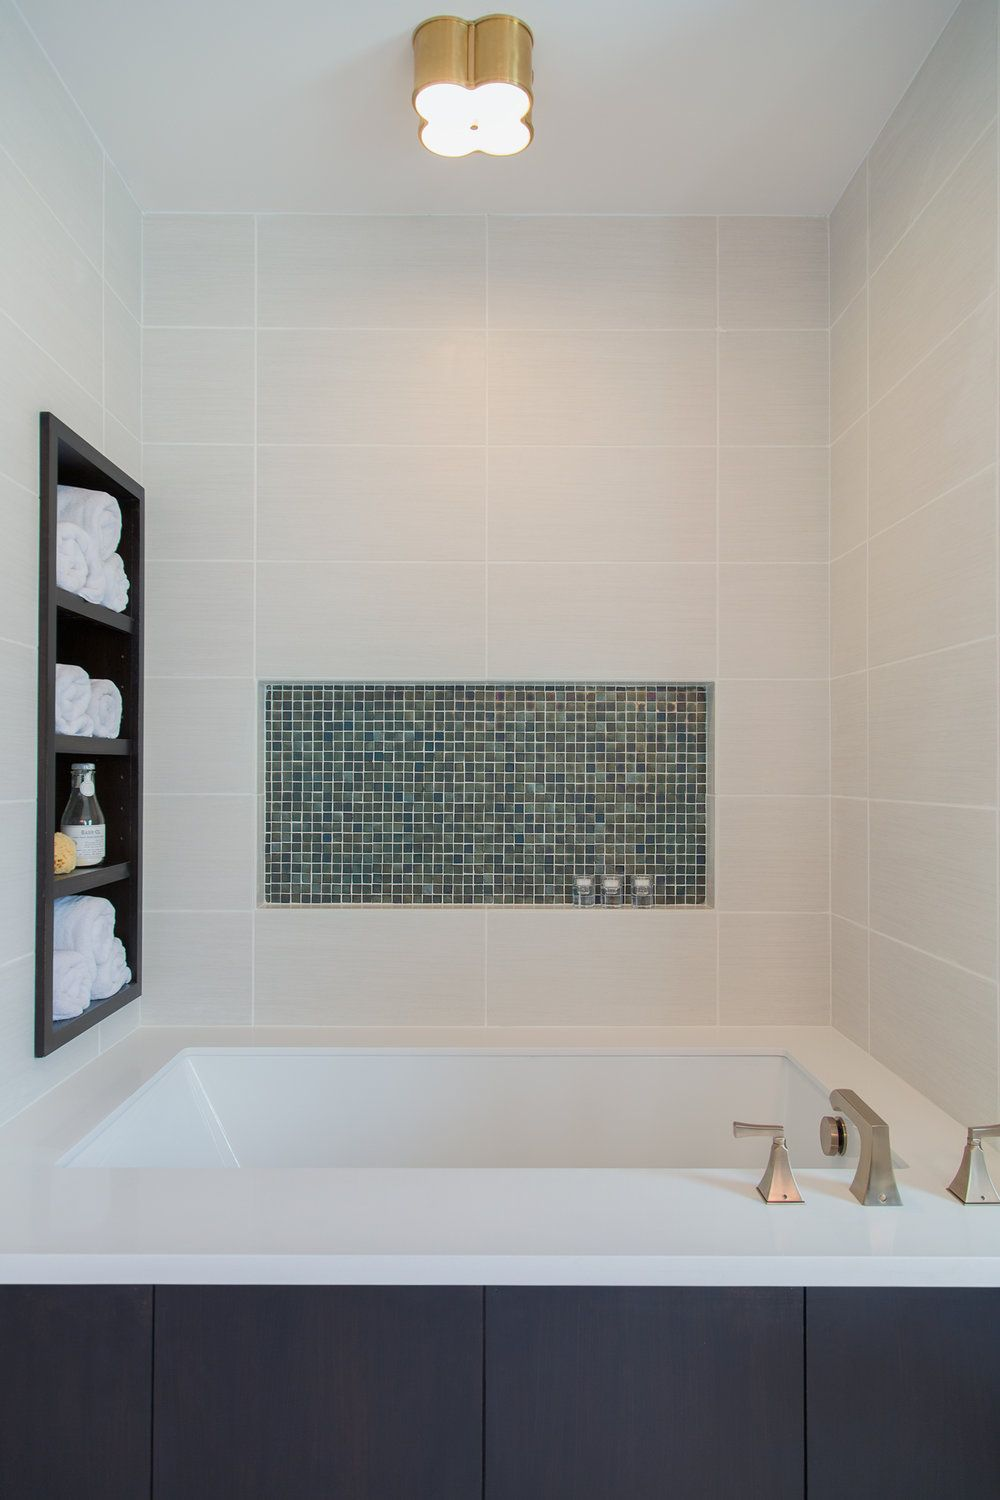 Master Bathroom Design Your Own on design your own living room, design your own home addition, design your own pantry, design your own walk-in closet, design your own driveway, design your own garage, design your own pool, design your own backyard deck, design your own floor plan, design your own family room, design your own kitchen island, design your own laundry room, design your own basement, design your own spa, design your own model, design your own office, design your own yard, design your own fireplace, design your own hot tub, design your own front,